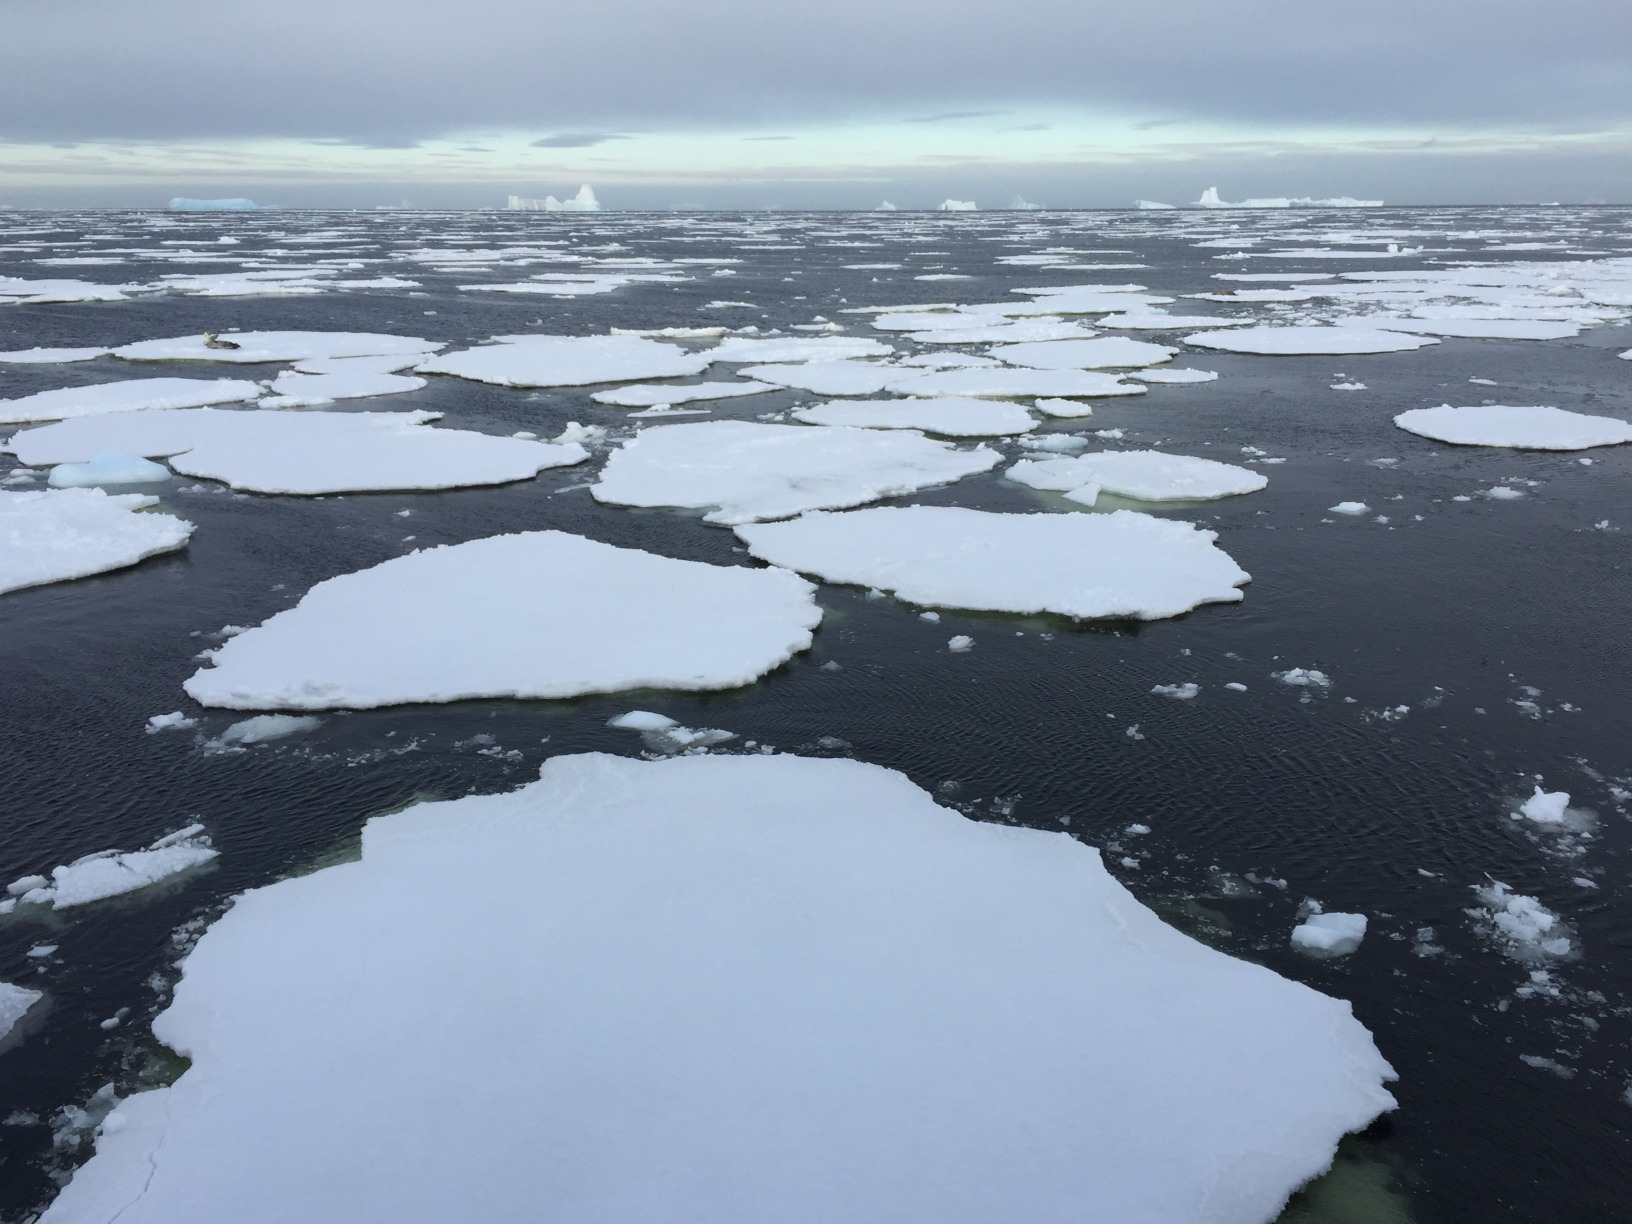 Views over pancake ice in Antarctica, as far as the eye can see